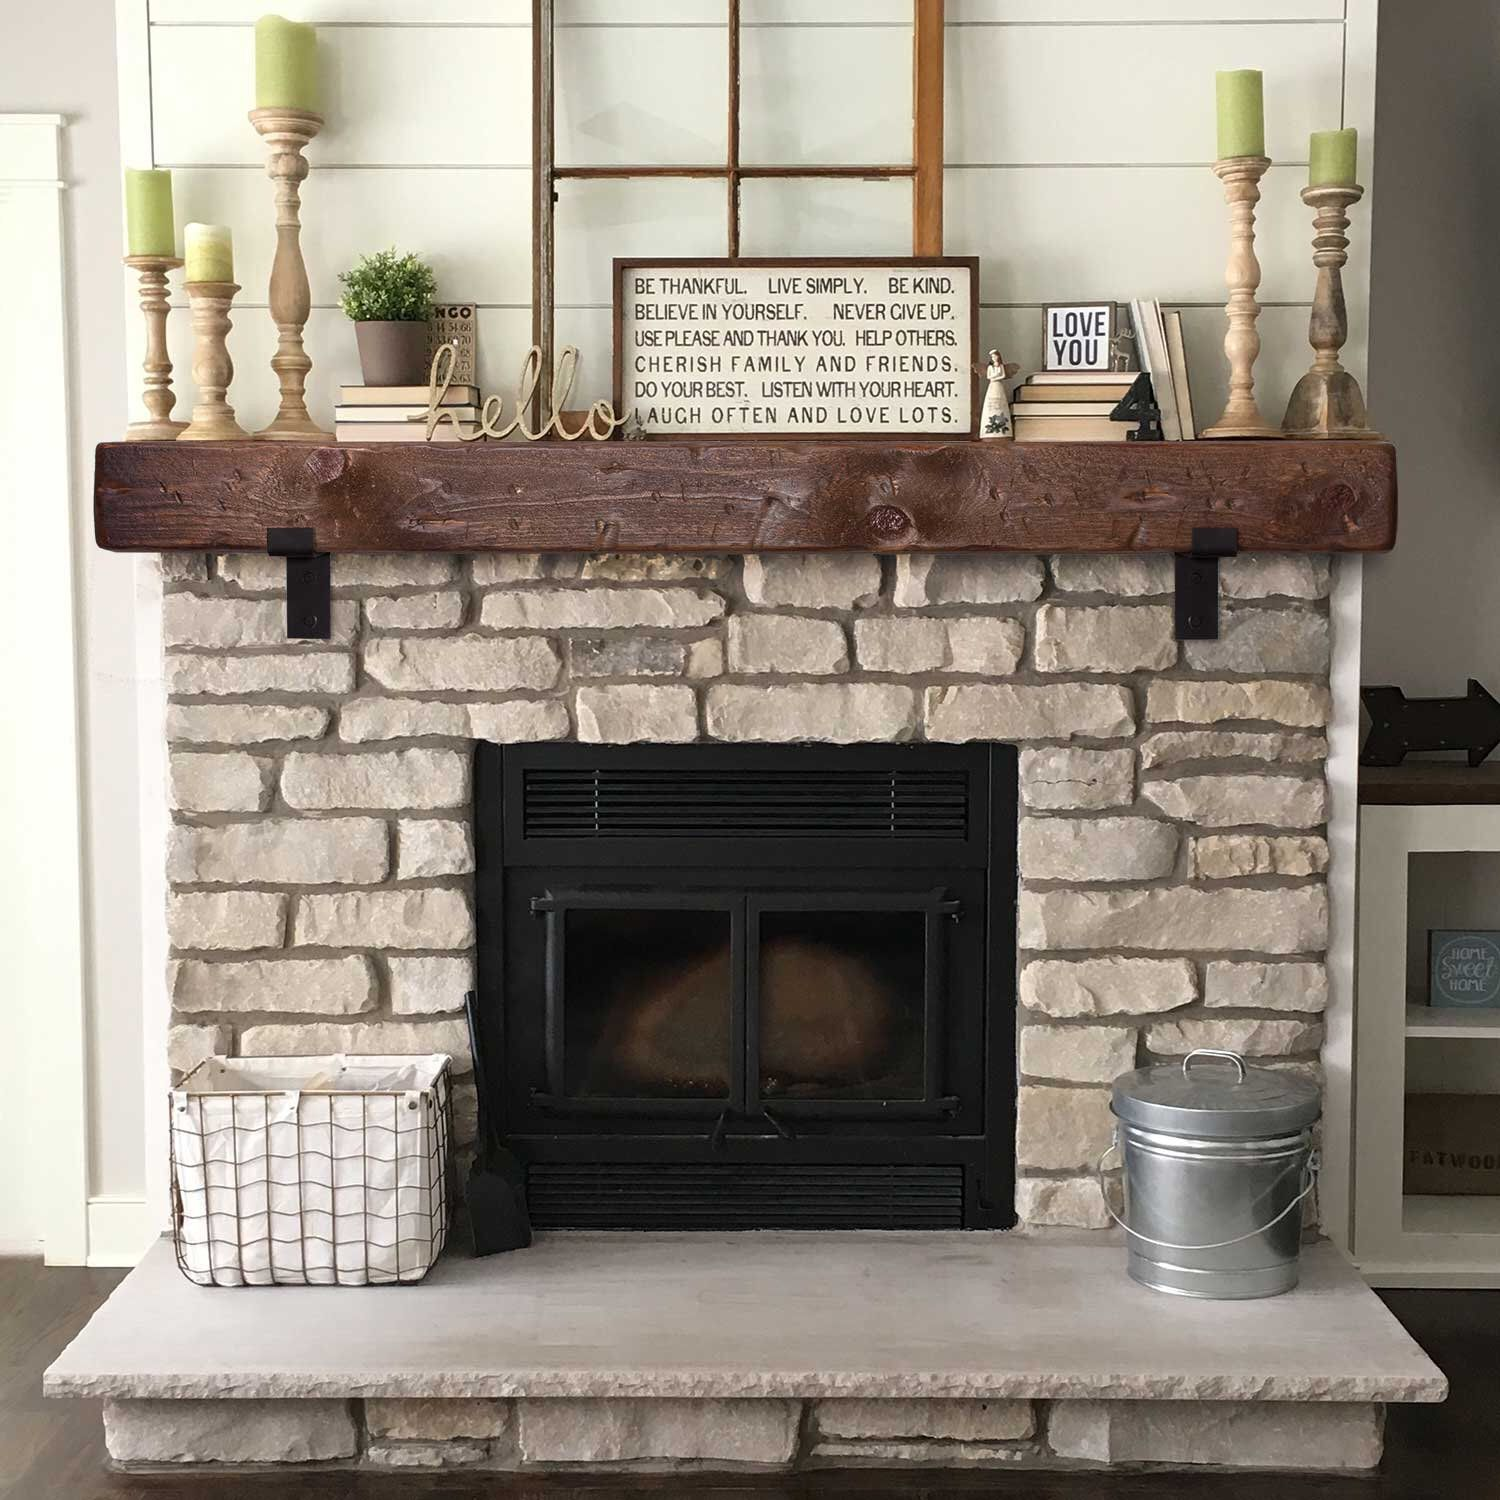 Mantel With Metal Brackets Fireplace Mantel 5x6 6x6 Or 6x8 Mantle Rustic Mantle Floating Barn Wood Barn Beam Custom Lengths In 2020 Farmhouse Fireplace Decor Rustic Farmhouse Fireplace Fireplace Remodel